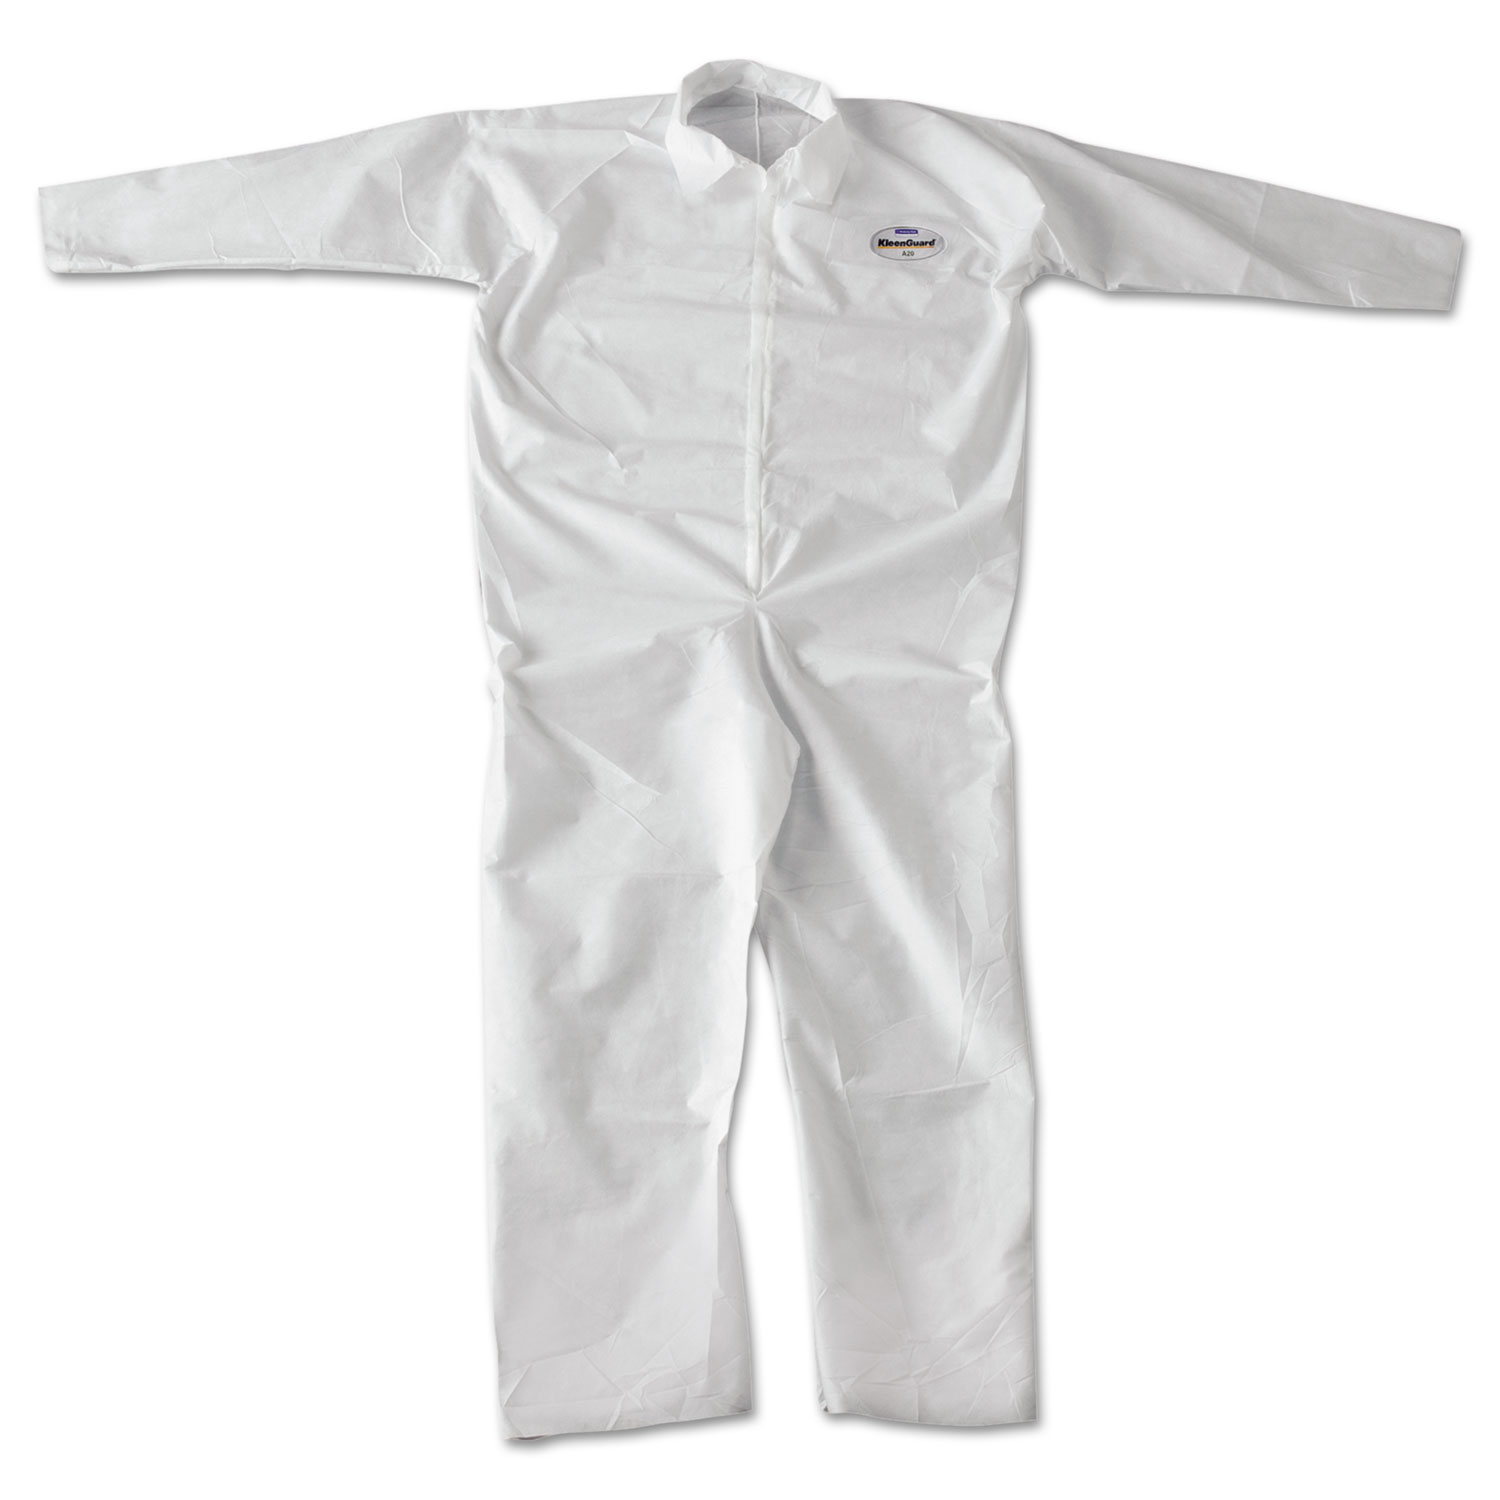 KLEENGUARD A20 Breathable Particle Protection Coveralls with Zip Closure